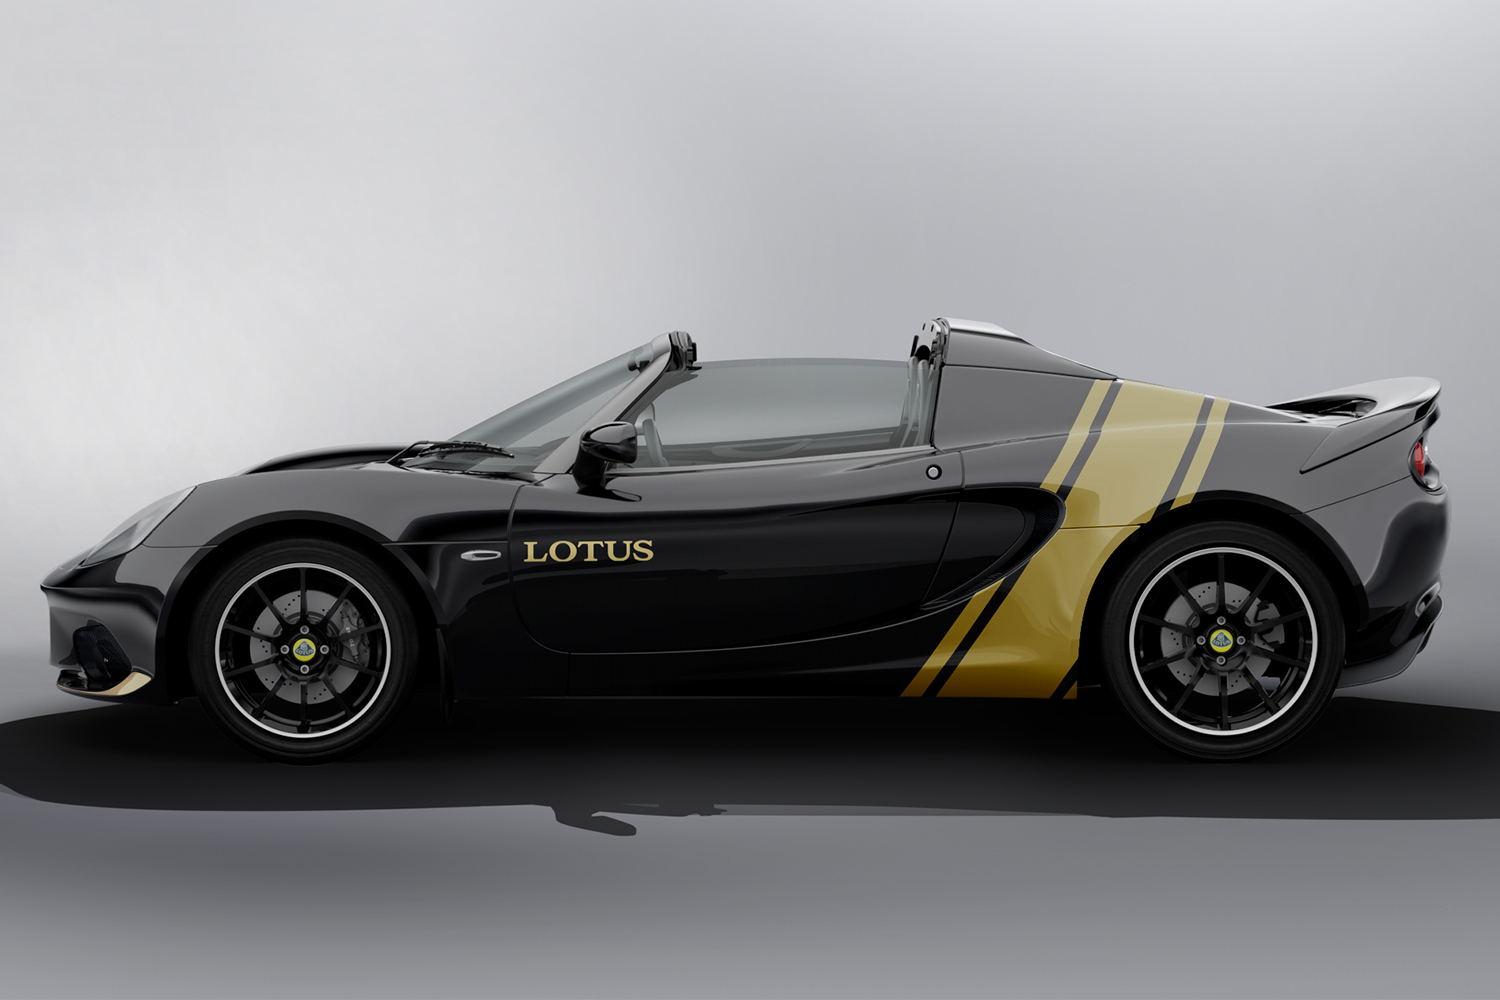 Lotus Elise Classic Heritage Editions black and gold